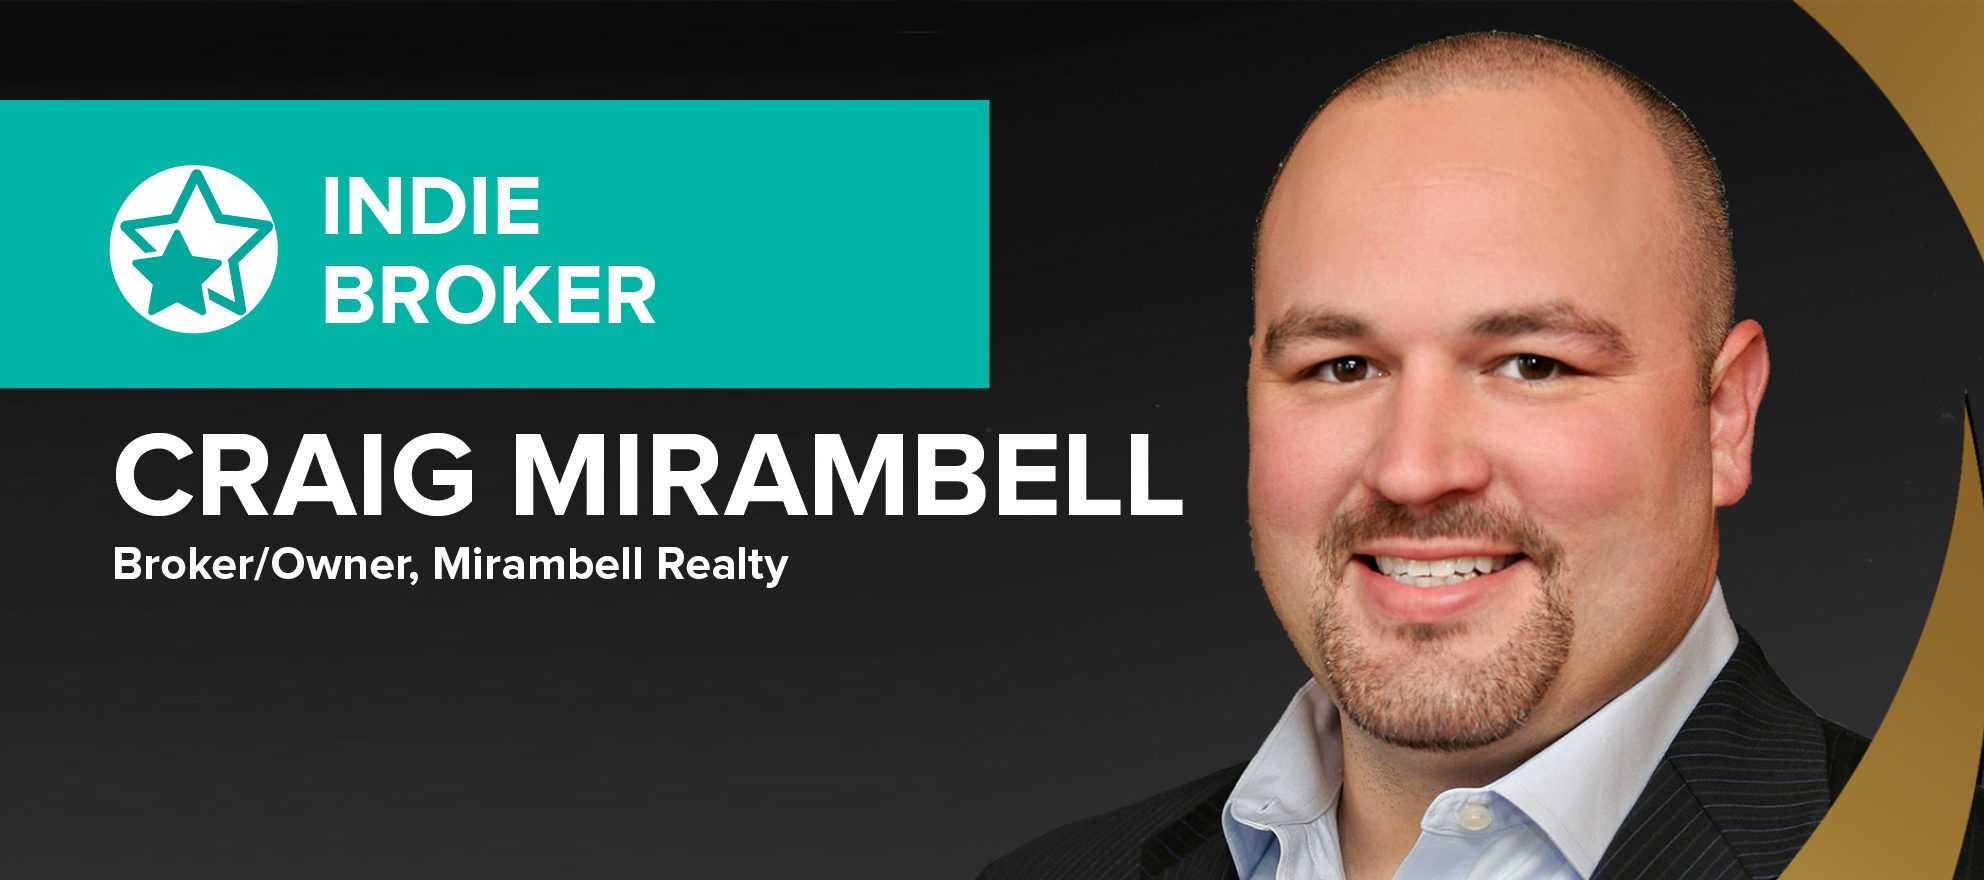 Independent broker Craig Mirambell on his 'blueprint for success'